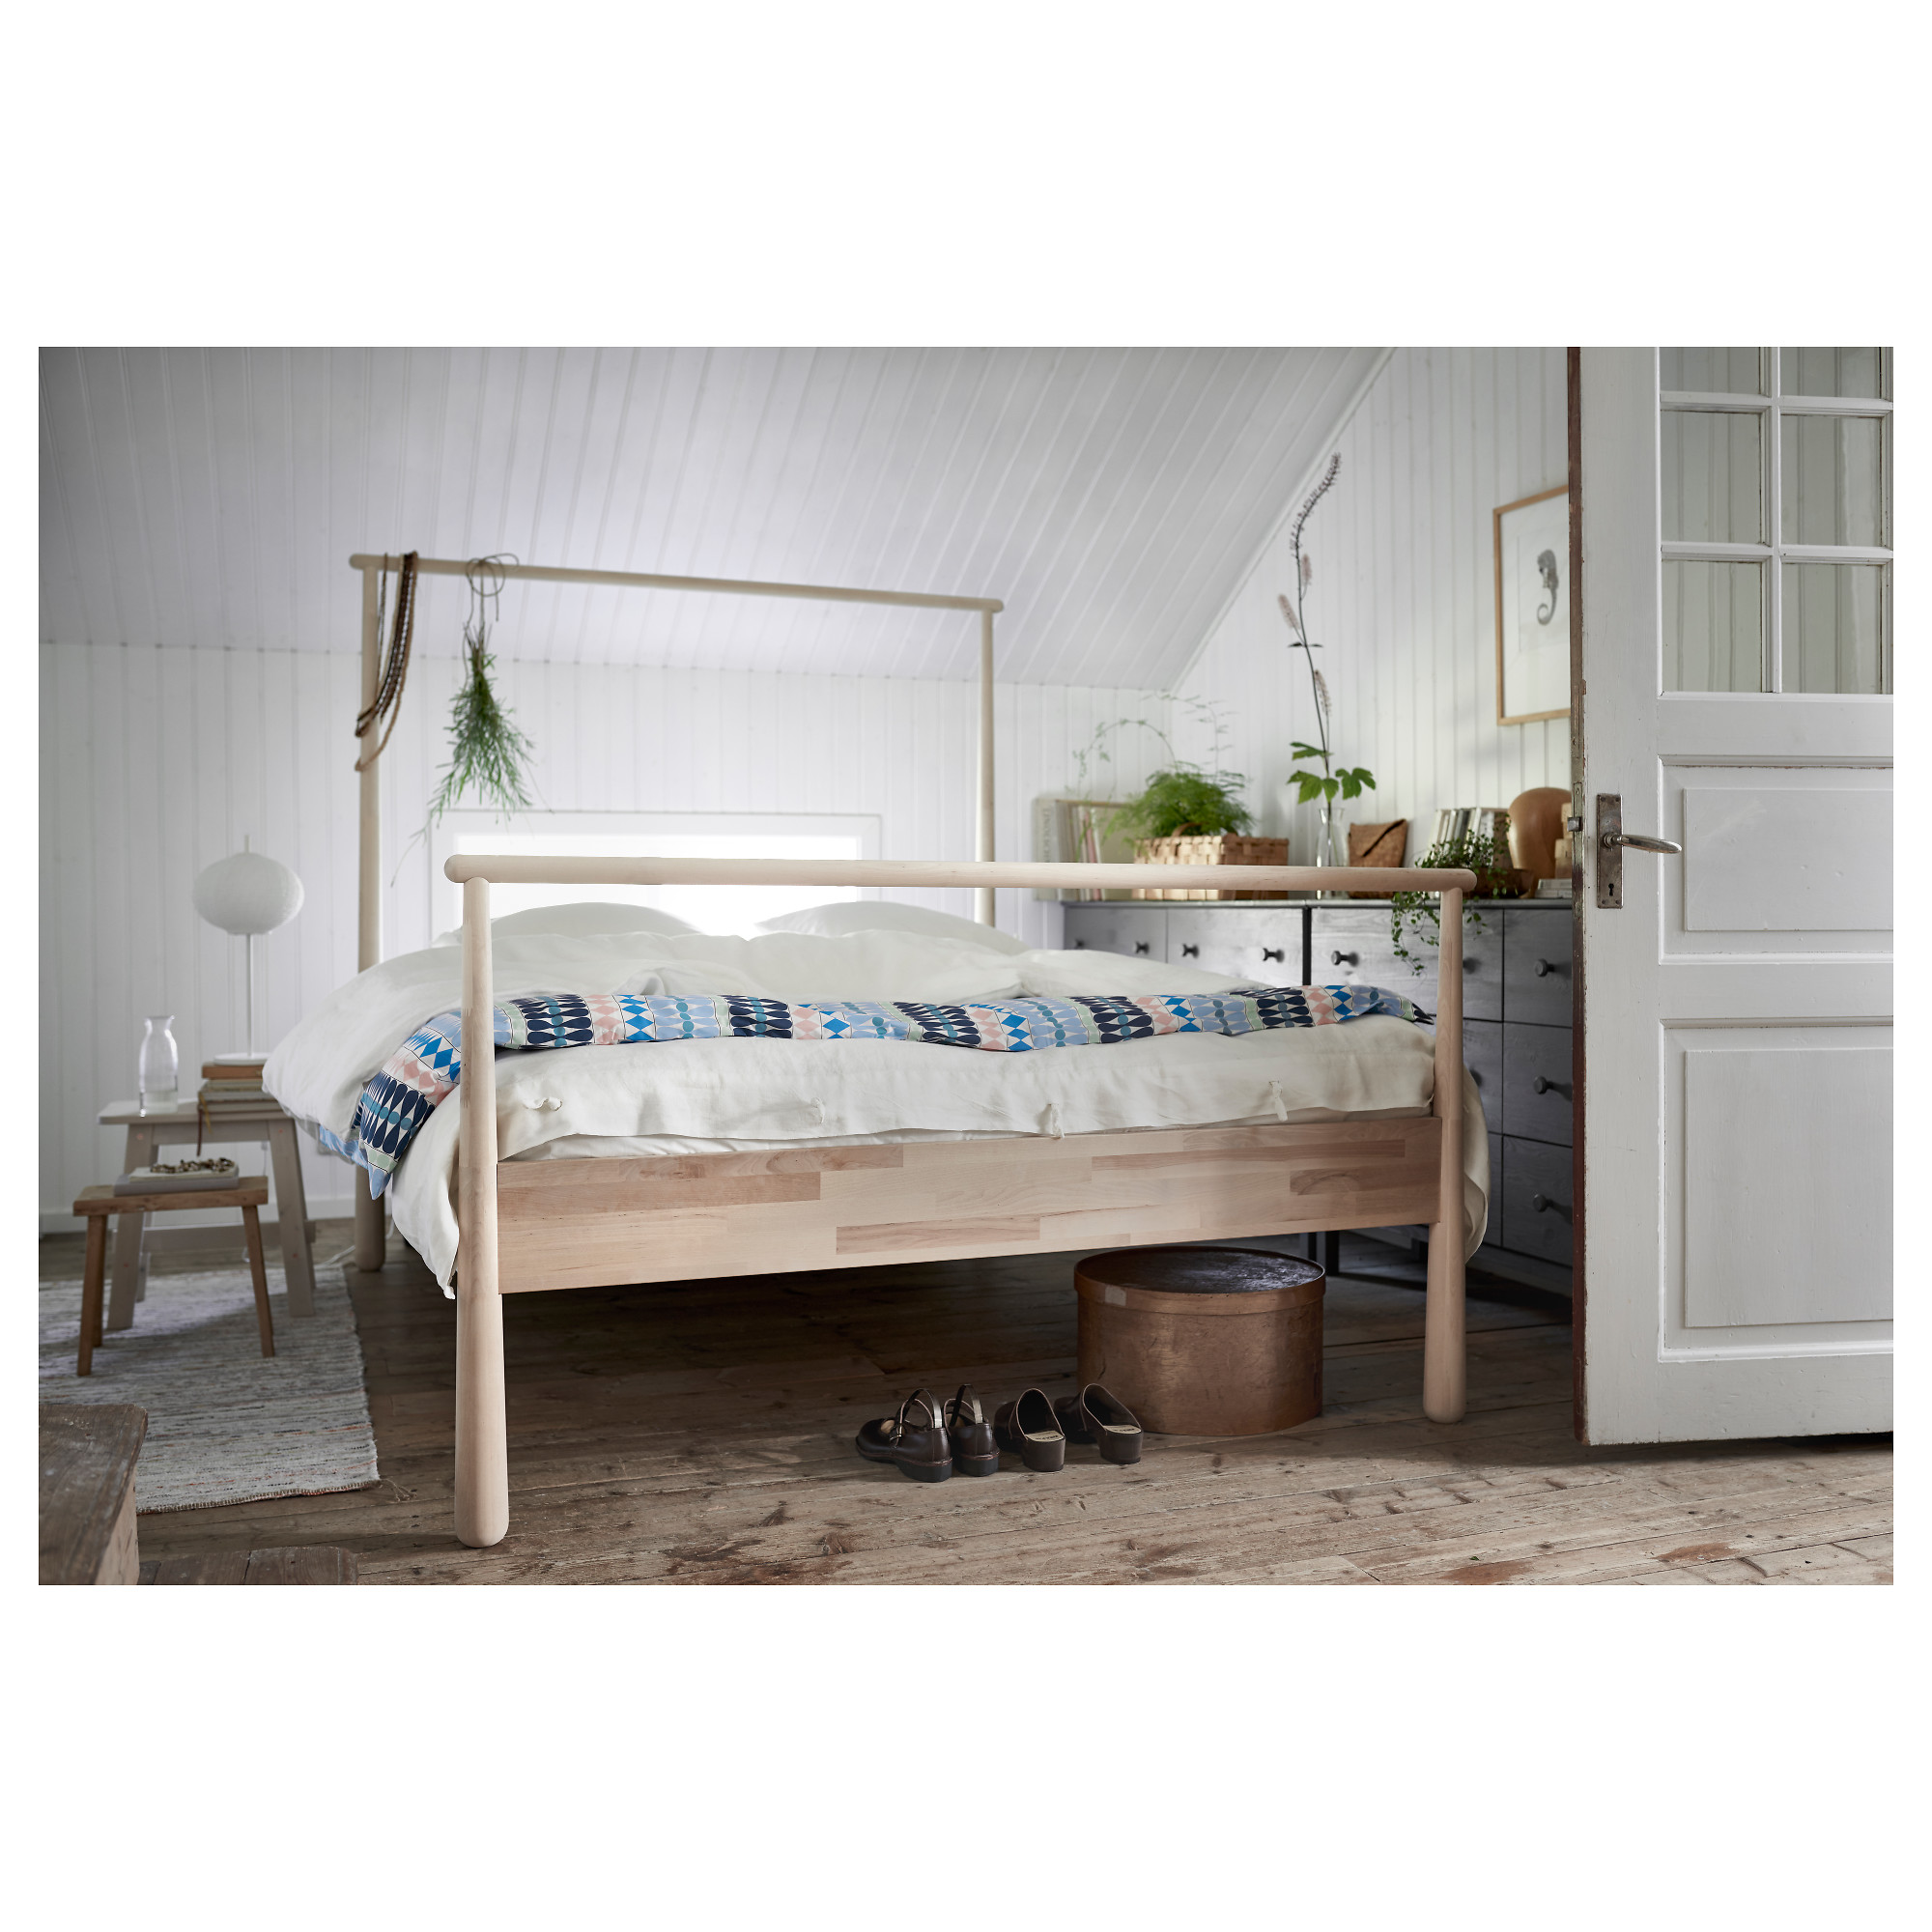 GJ–RA Bed frame Queen Luröy slatted bed base IKEA